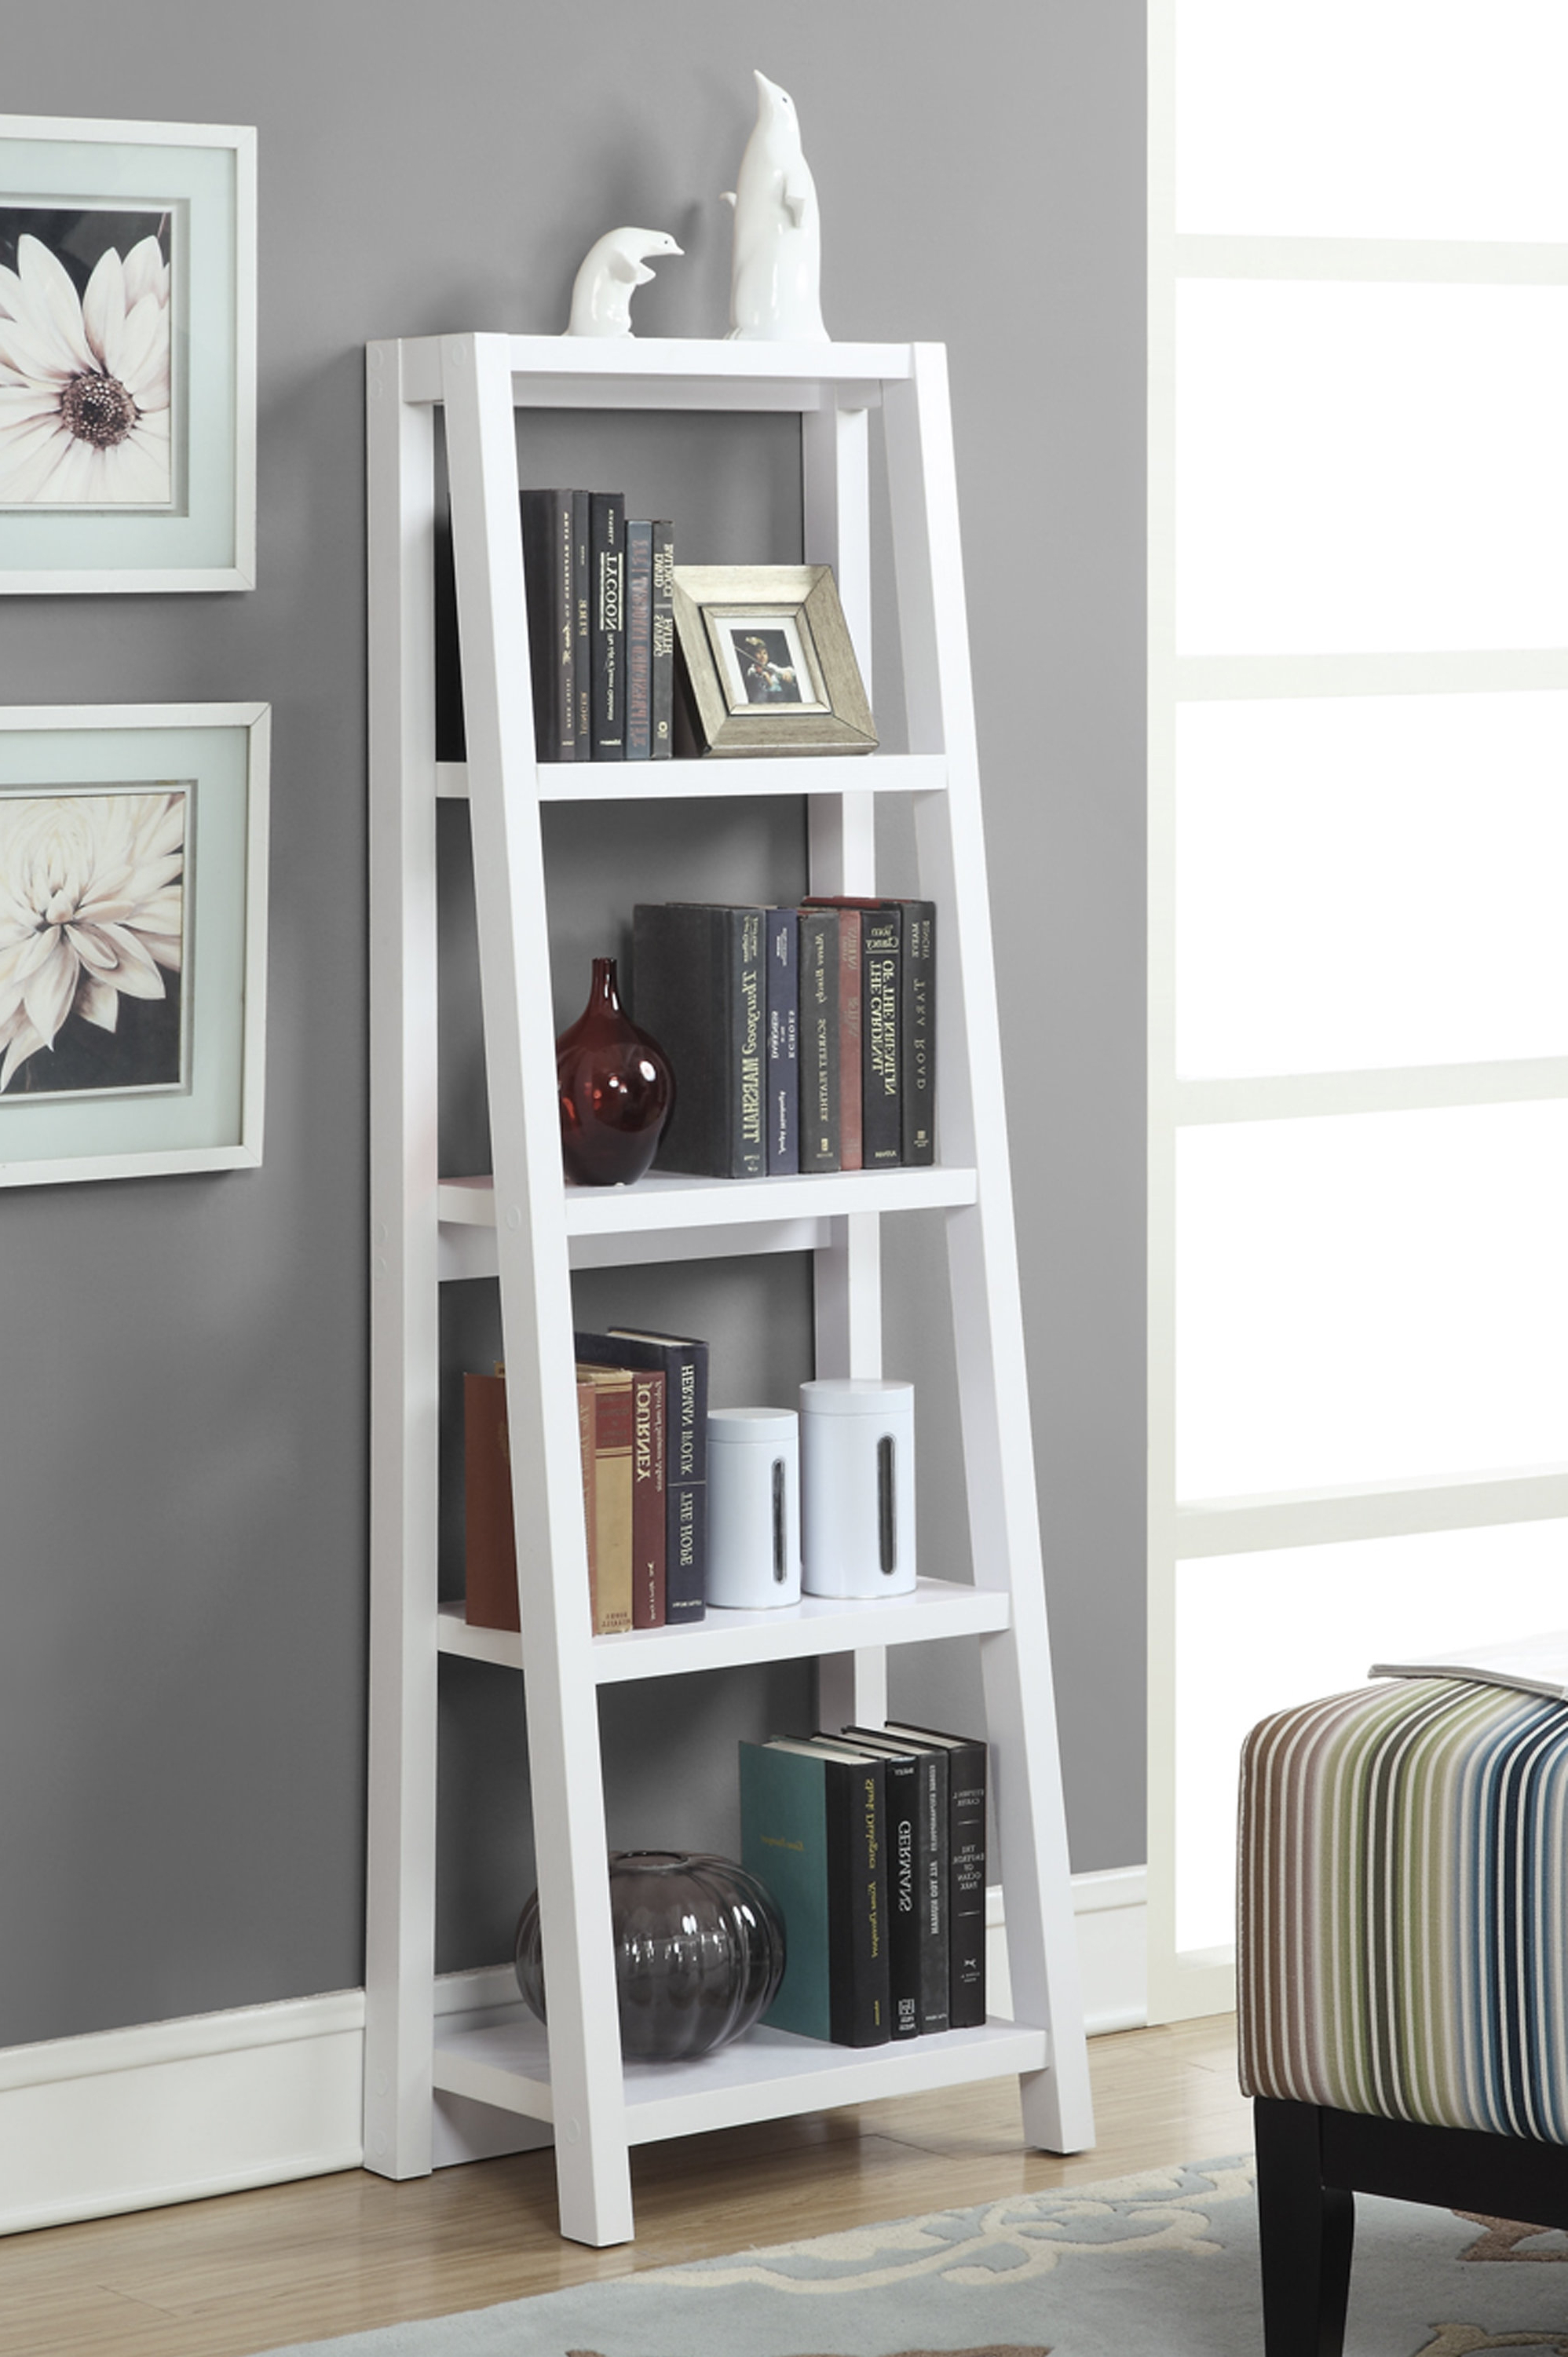 Recent Morrell Standard Bookcases With Regard To Farmhouse & Rustic Andover Mills Bookcases & Bookshelves (View 15 of 20)